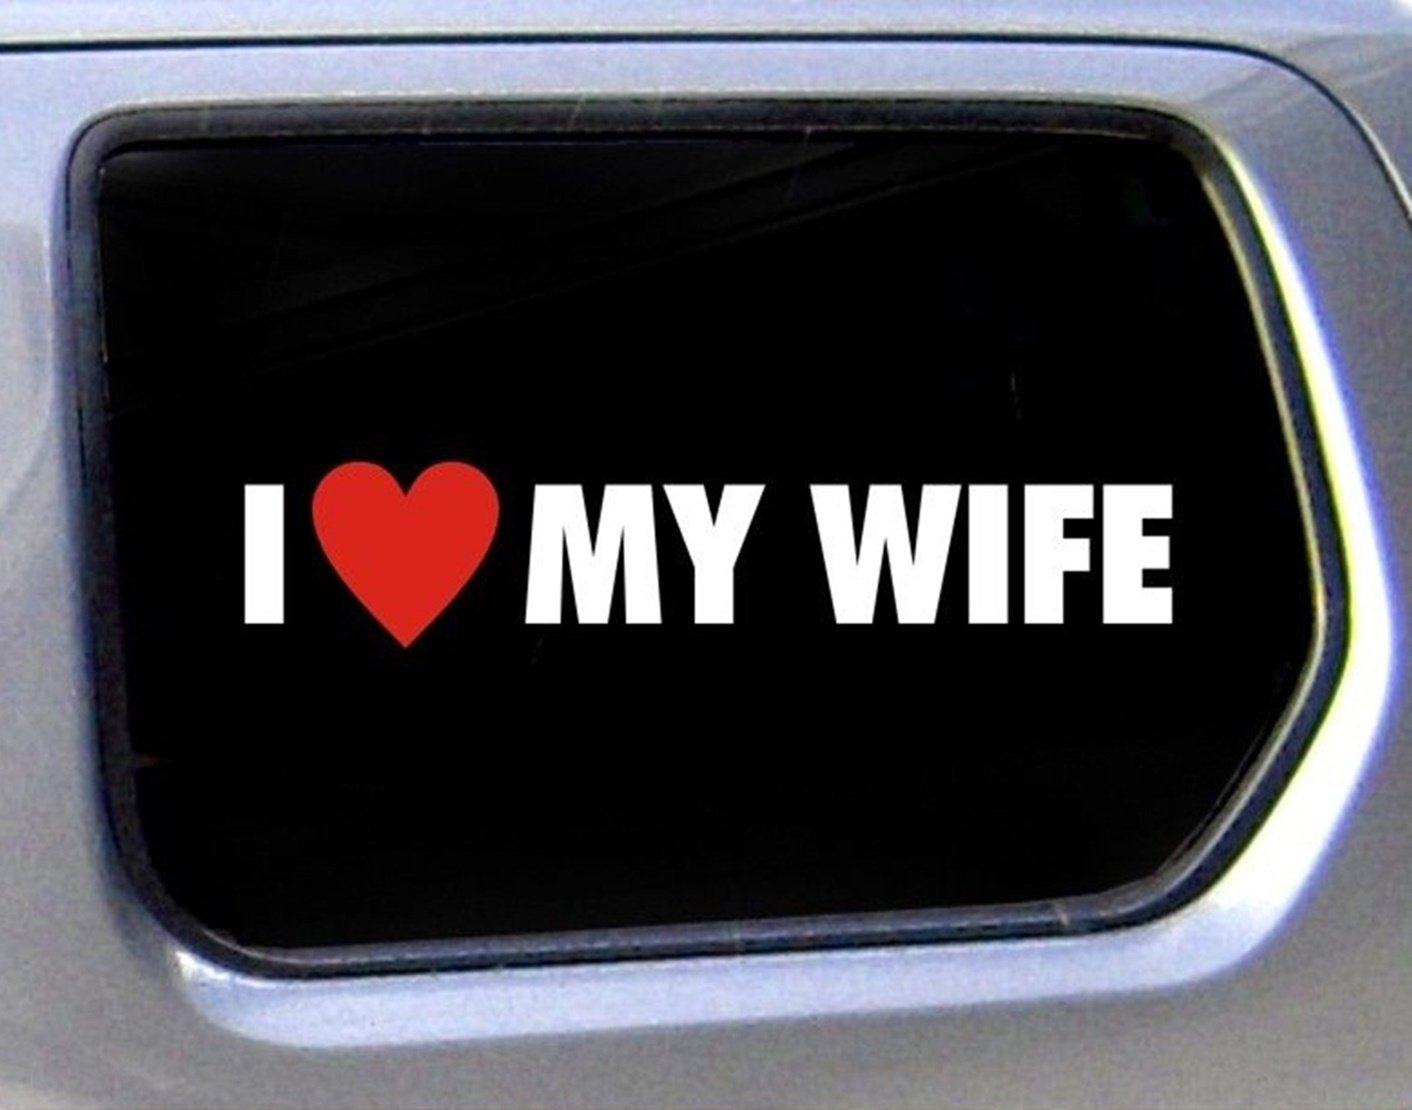 1 set radiant unique funny i love my wife car window stickers family married vinyl decal badge laptop patches decor luggage home art wall graphics sticker